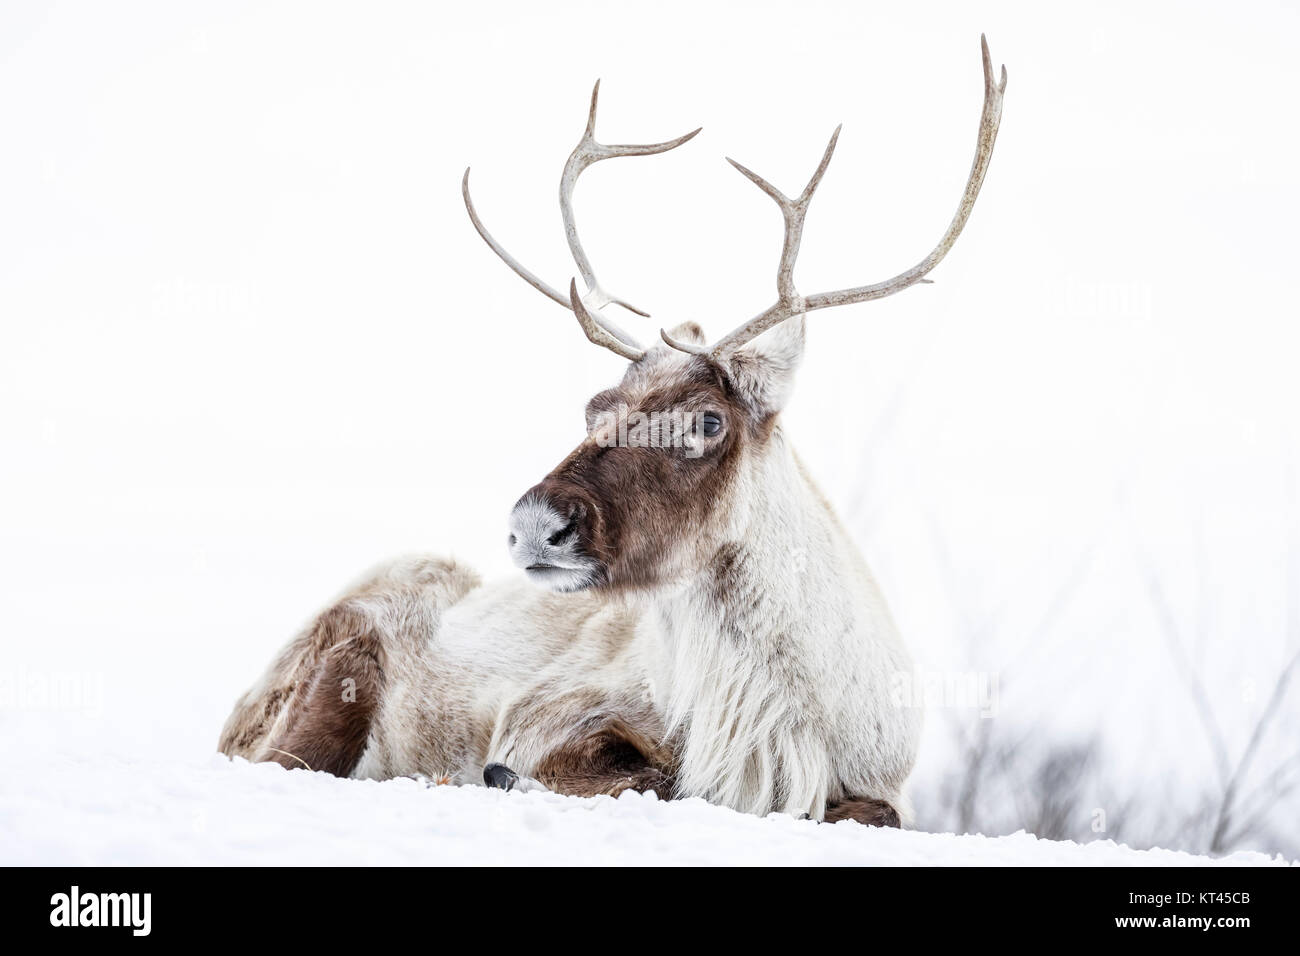 Reindeer, also known as the Boreal Woodland Caribou in North America, Rangifer tarandus, captive animal, Manitoba, - Stock Image